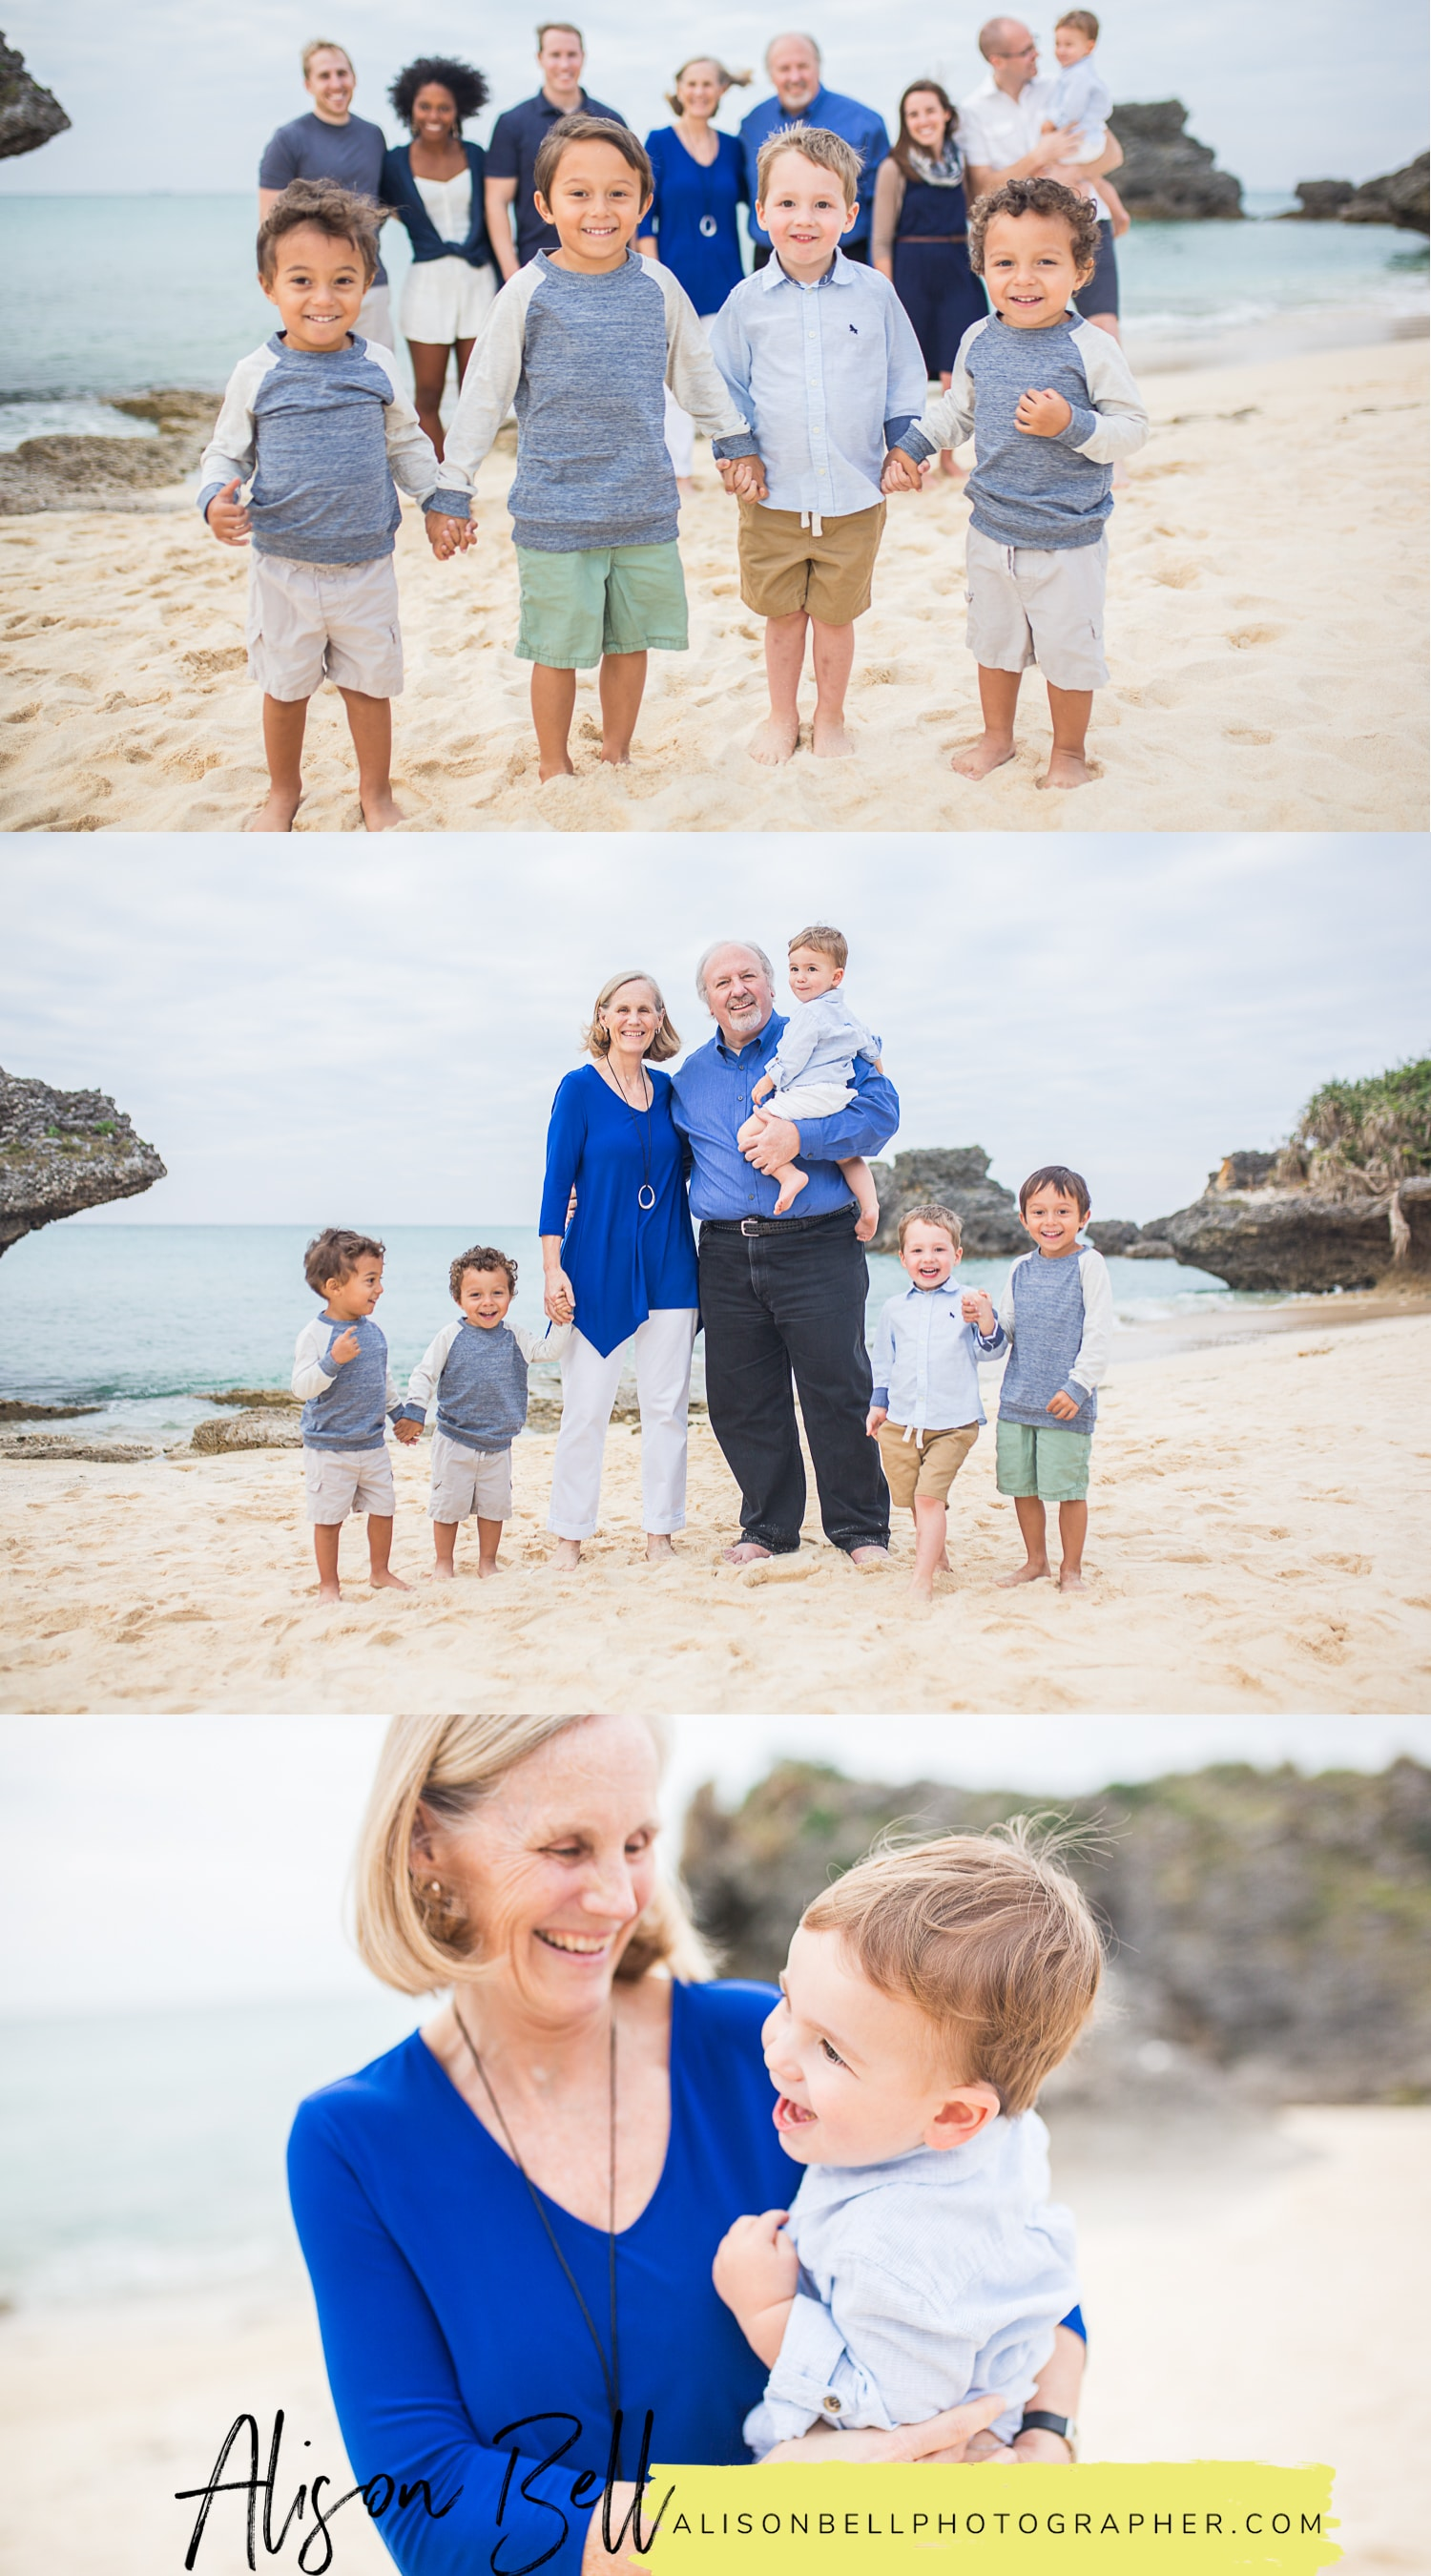 Extended family of 12 on the beach with 5 grandsons in Okinawa Japan by Alison Bell, Photographer